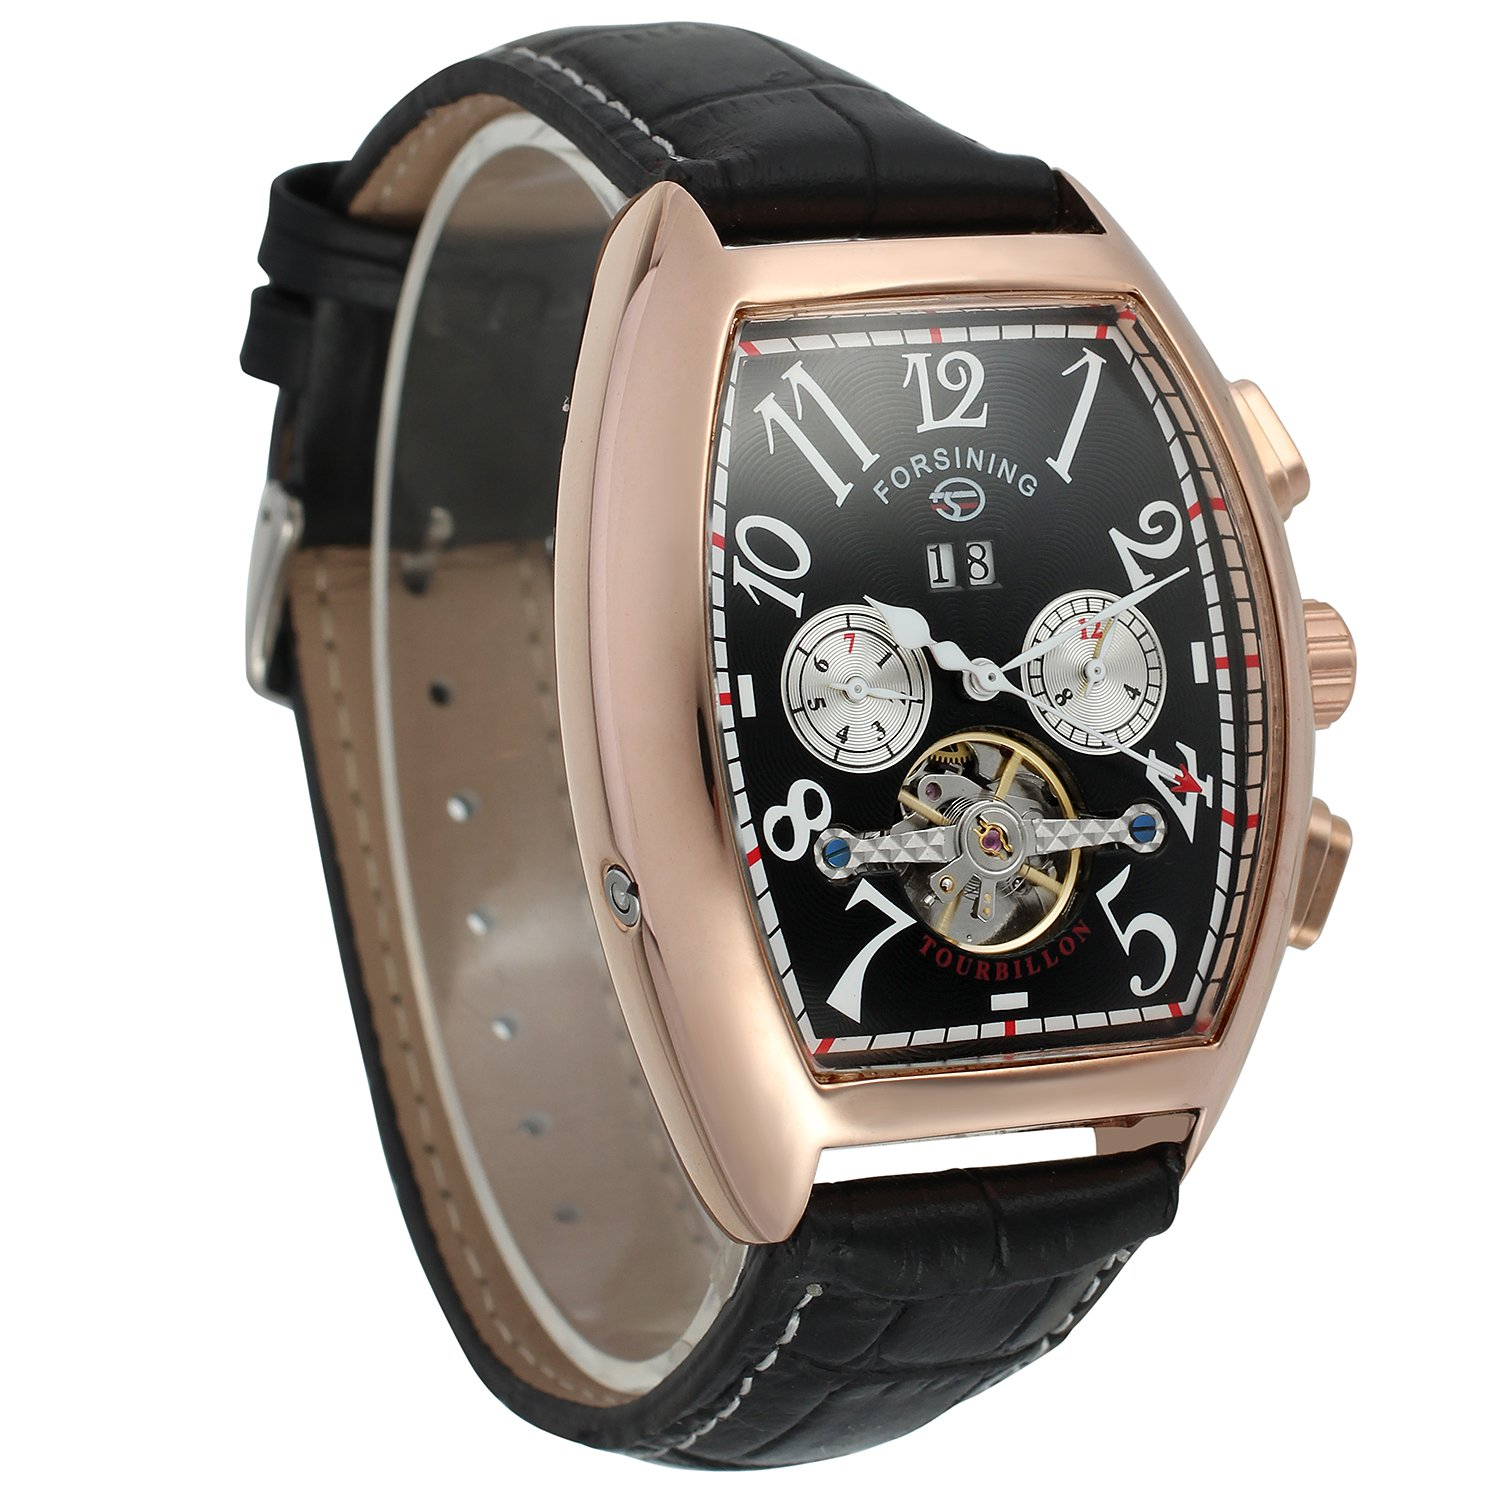 Forsining Men's Automatic Self-winding Tourbillon Calendar Brand Learher Strap Collectiton Watch FSG9409M3R5 by FORSINING (Image #5)